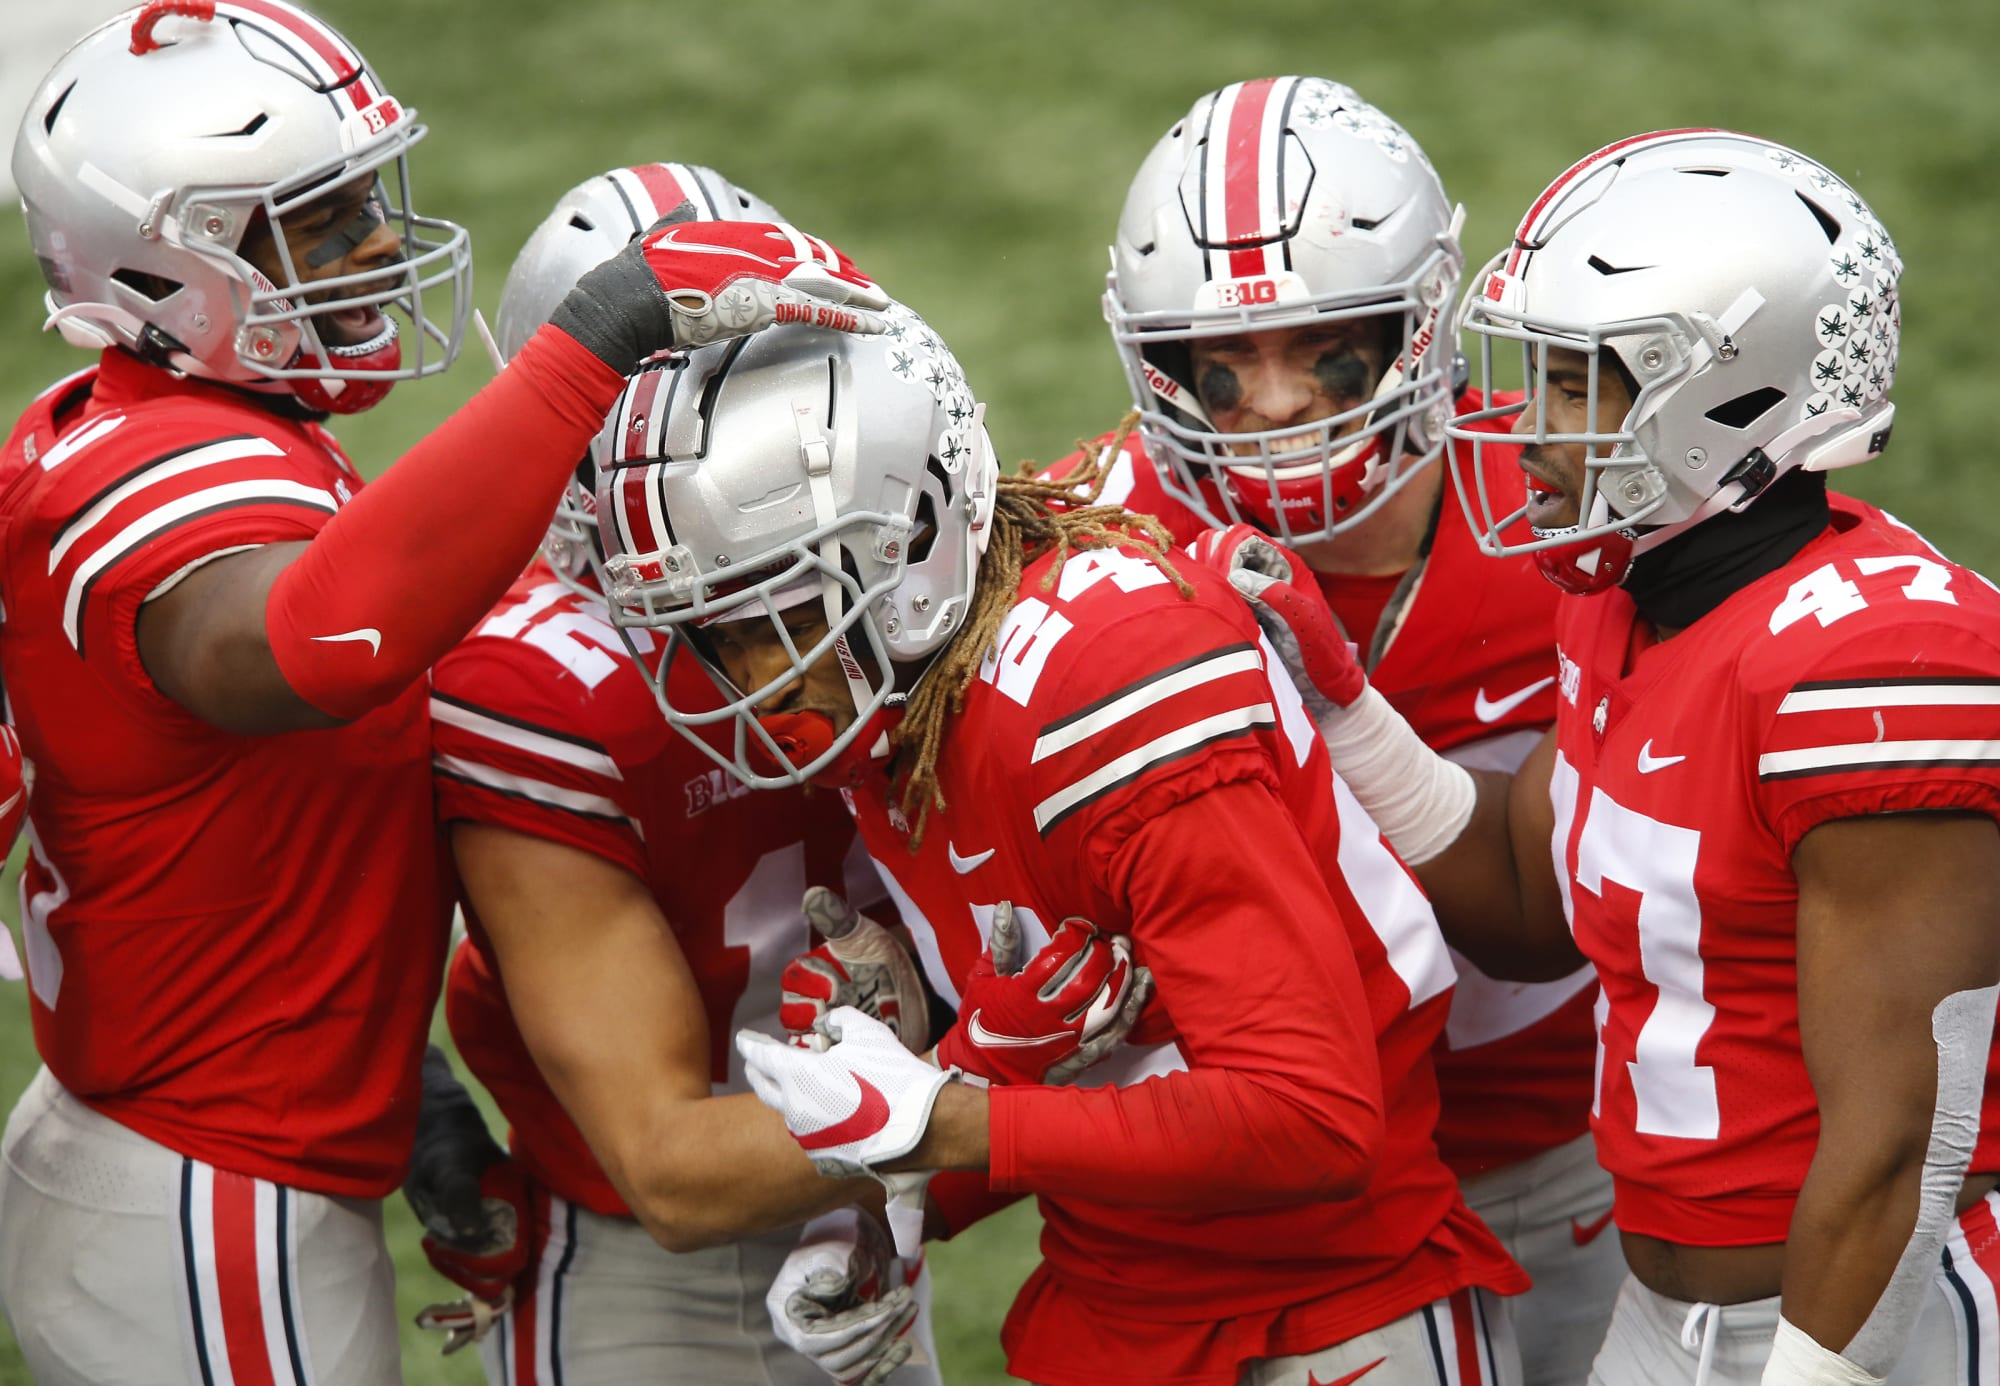 Big Ten may screw Ohio State out of a National Championship